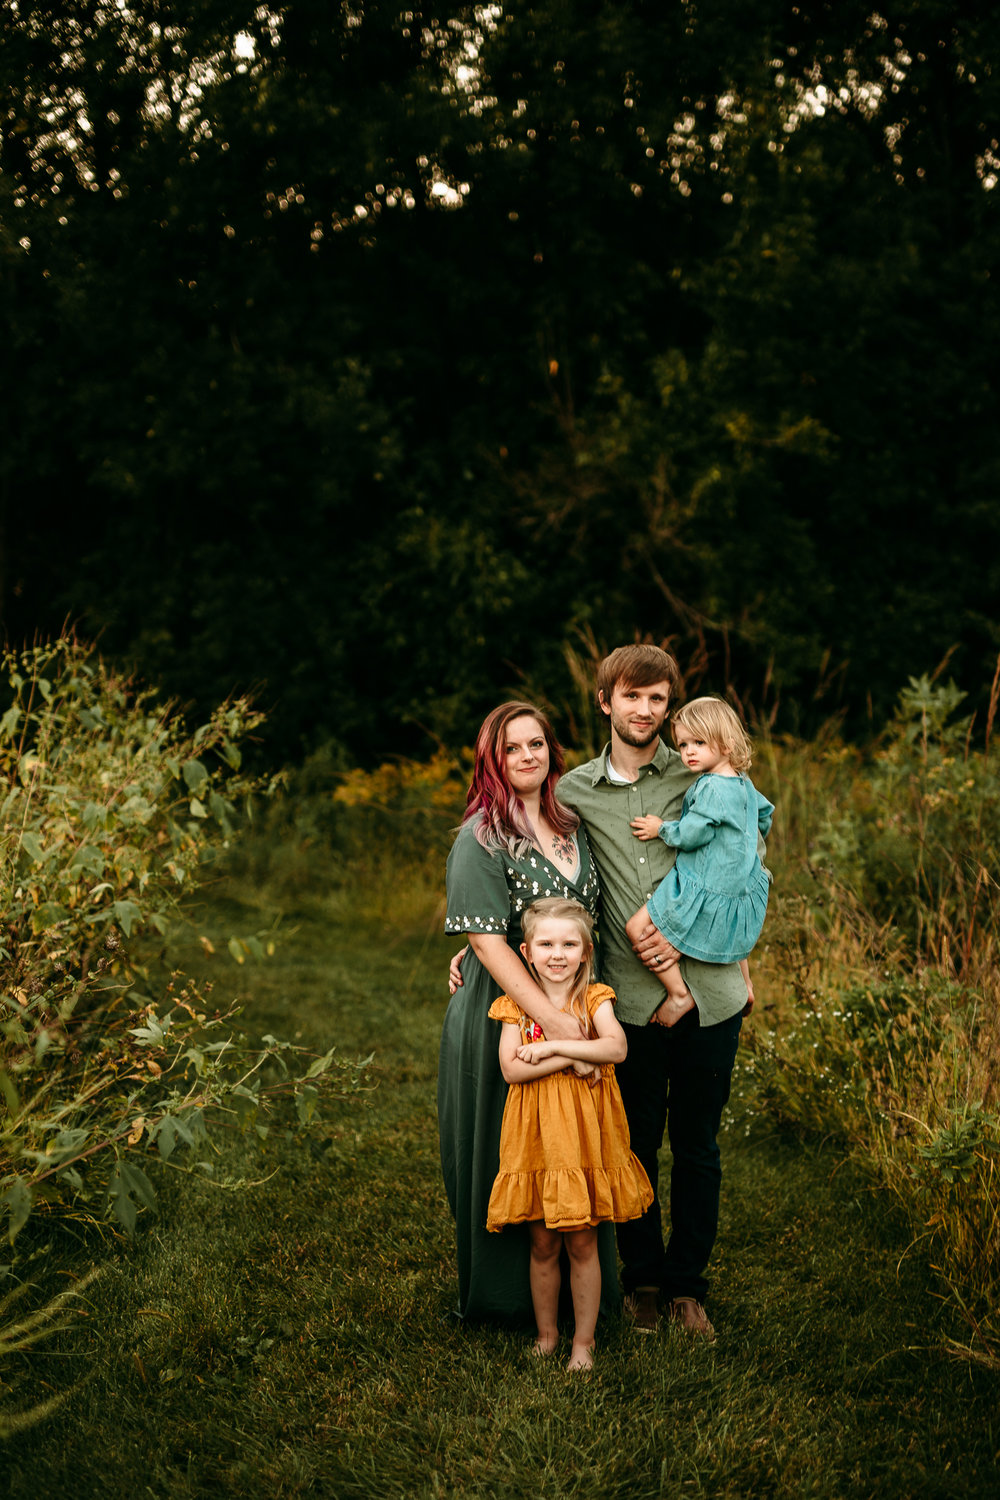 FREESE FAMILY MADE BELOVED PHOTOGRAPHY-16.jpg